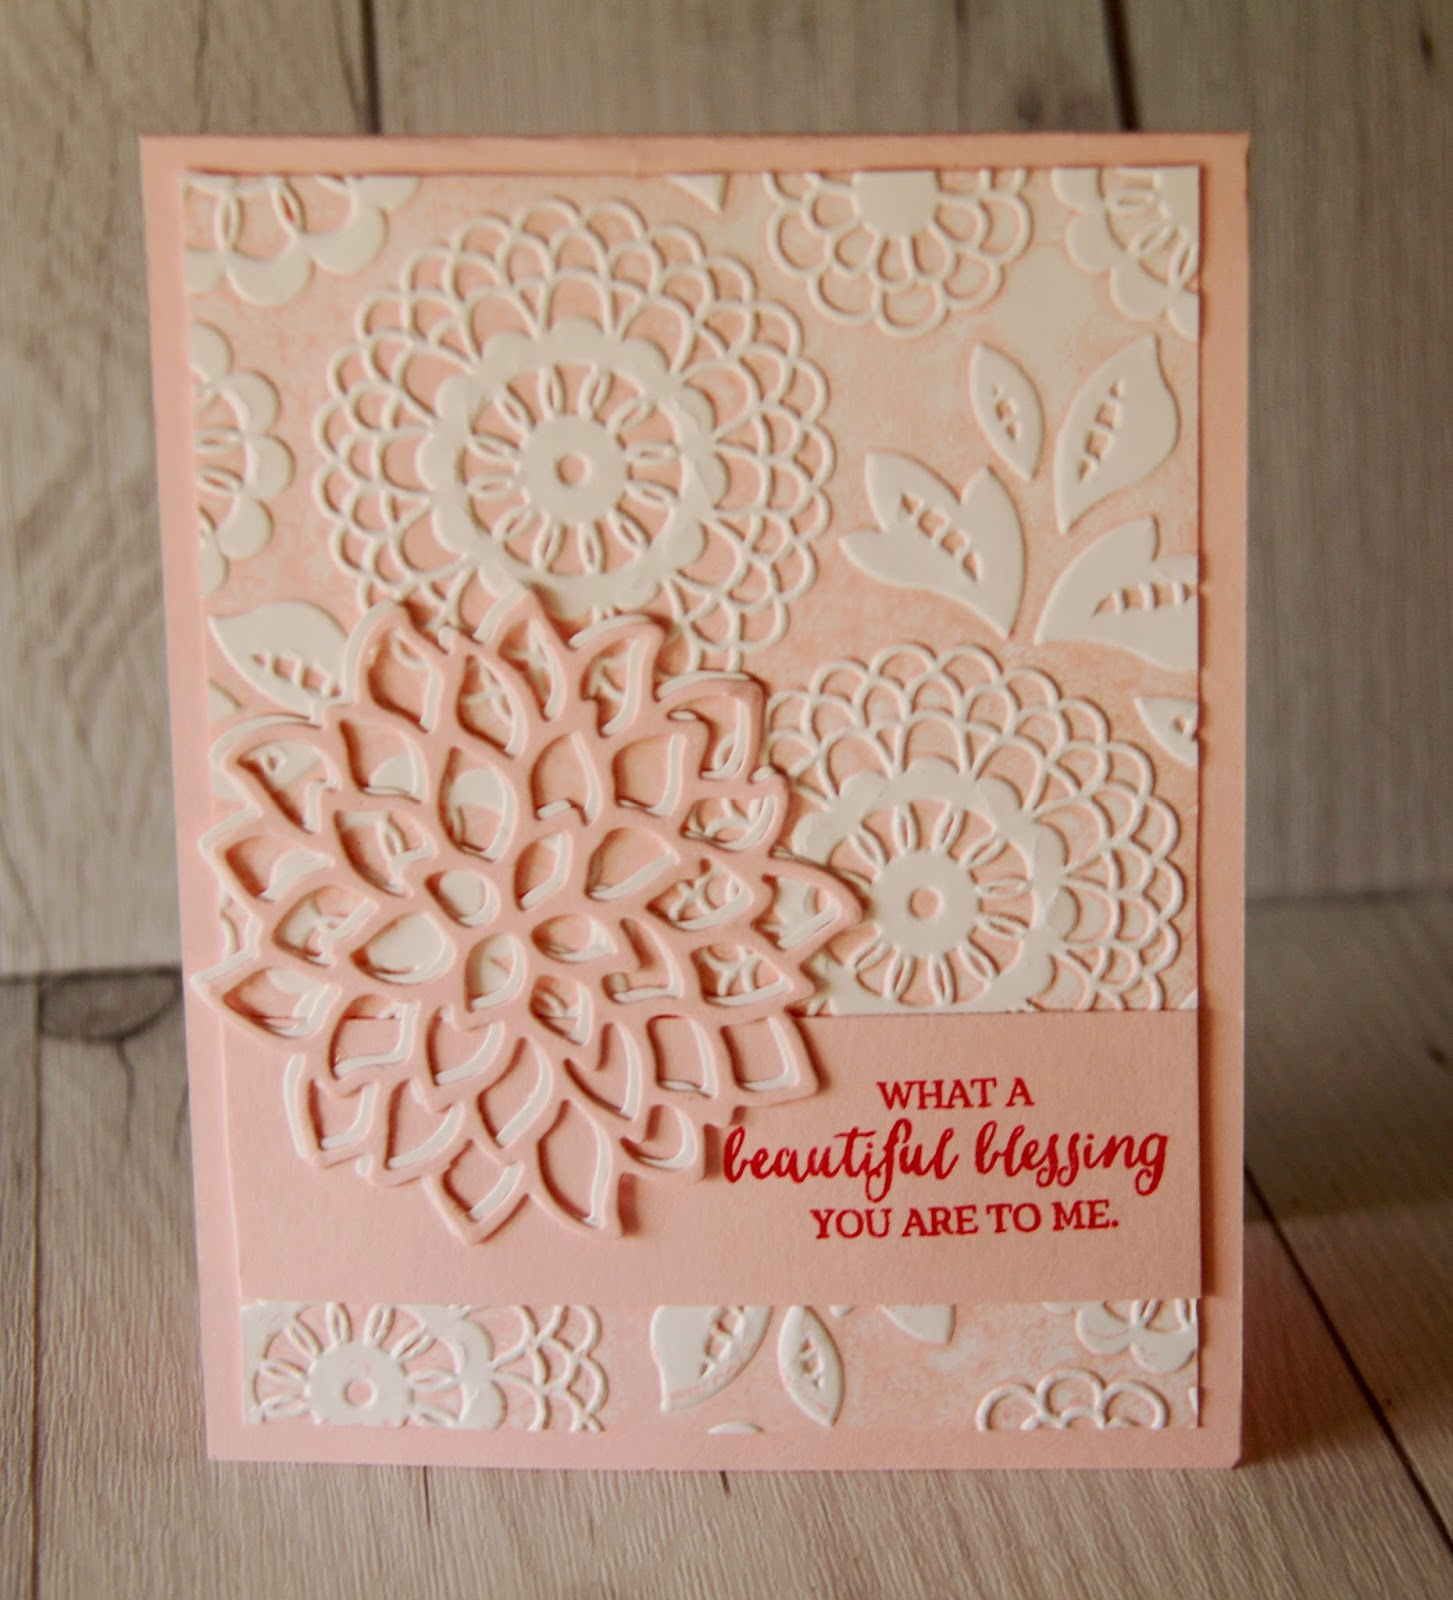 Stamped sophisticates lovely lace embossing folder from stampin up i used three different sentiments all from the rose wonder stamp set i also cut both a whisper white and a pink pirouette flower using the may flowers m4hsunfo